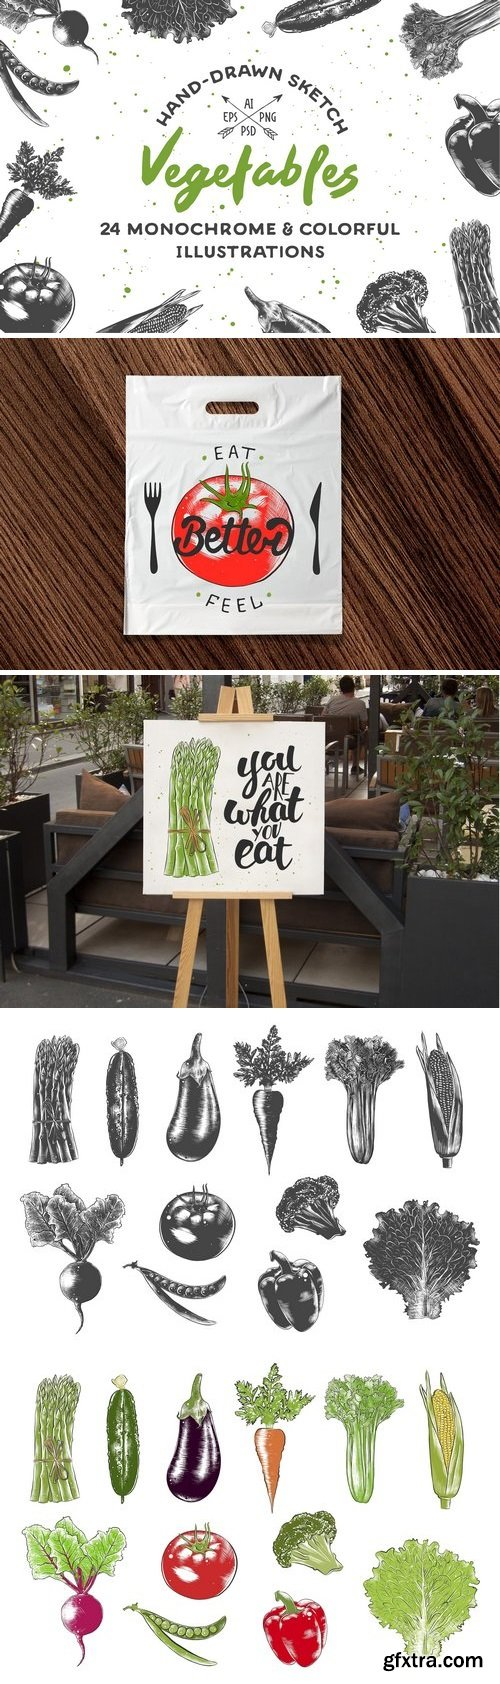 CM - Collection of hand-drawn vegetables 2342132